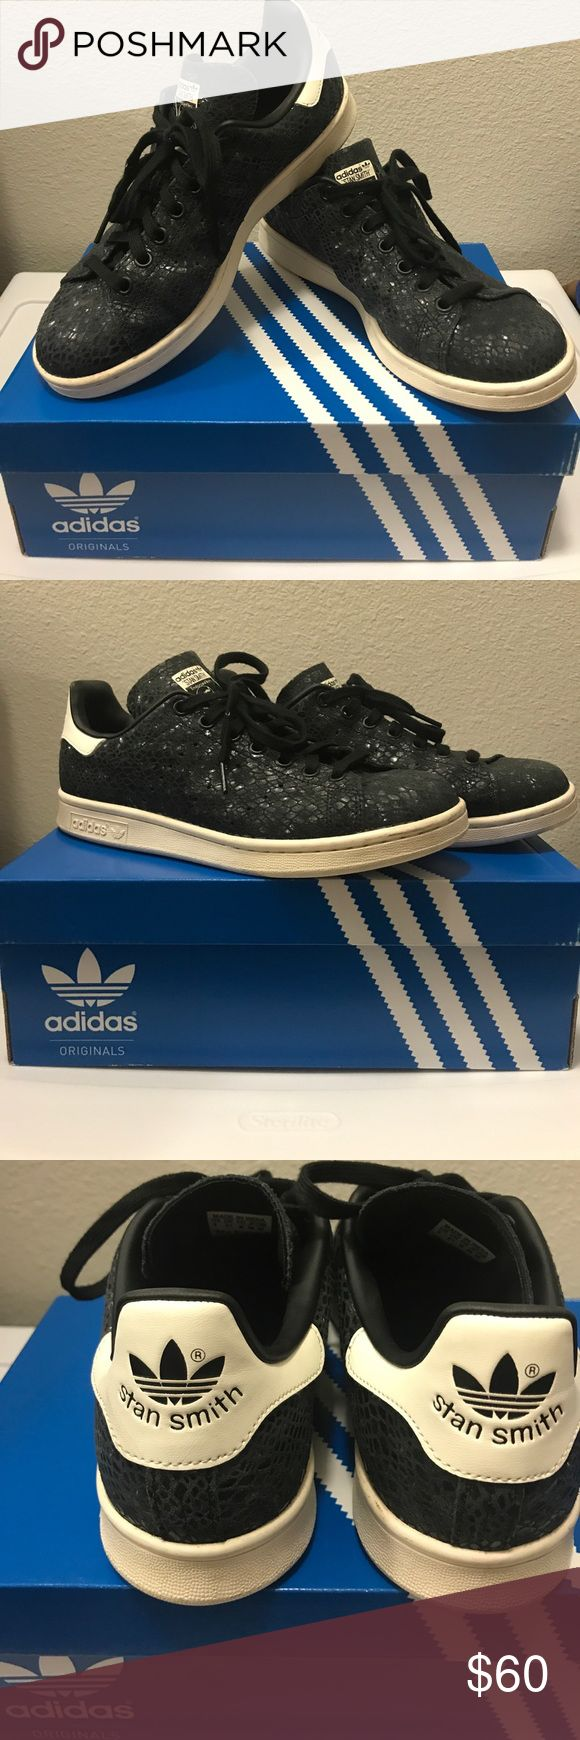 "Pre-Owned ""ADIDAS STAN SMITH"" ©™ Pre-Owned ""ADIDAS STAN SMITH SNAKE CORE BLACK"".  Size: 8W.  Color: Black/white.  In very good conditon, seldom used.  Does not come with the original box. Adidas Shoes Sneakers"